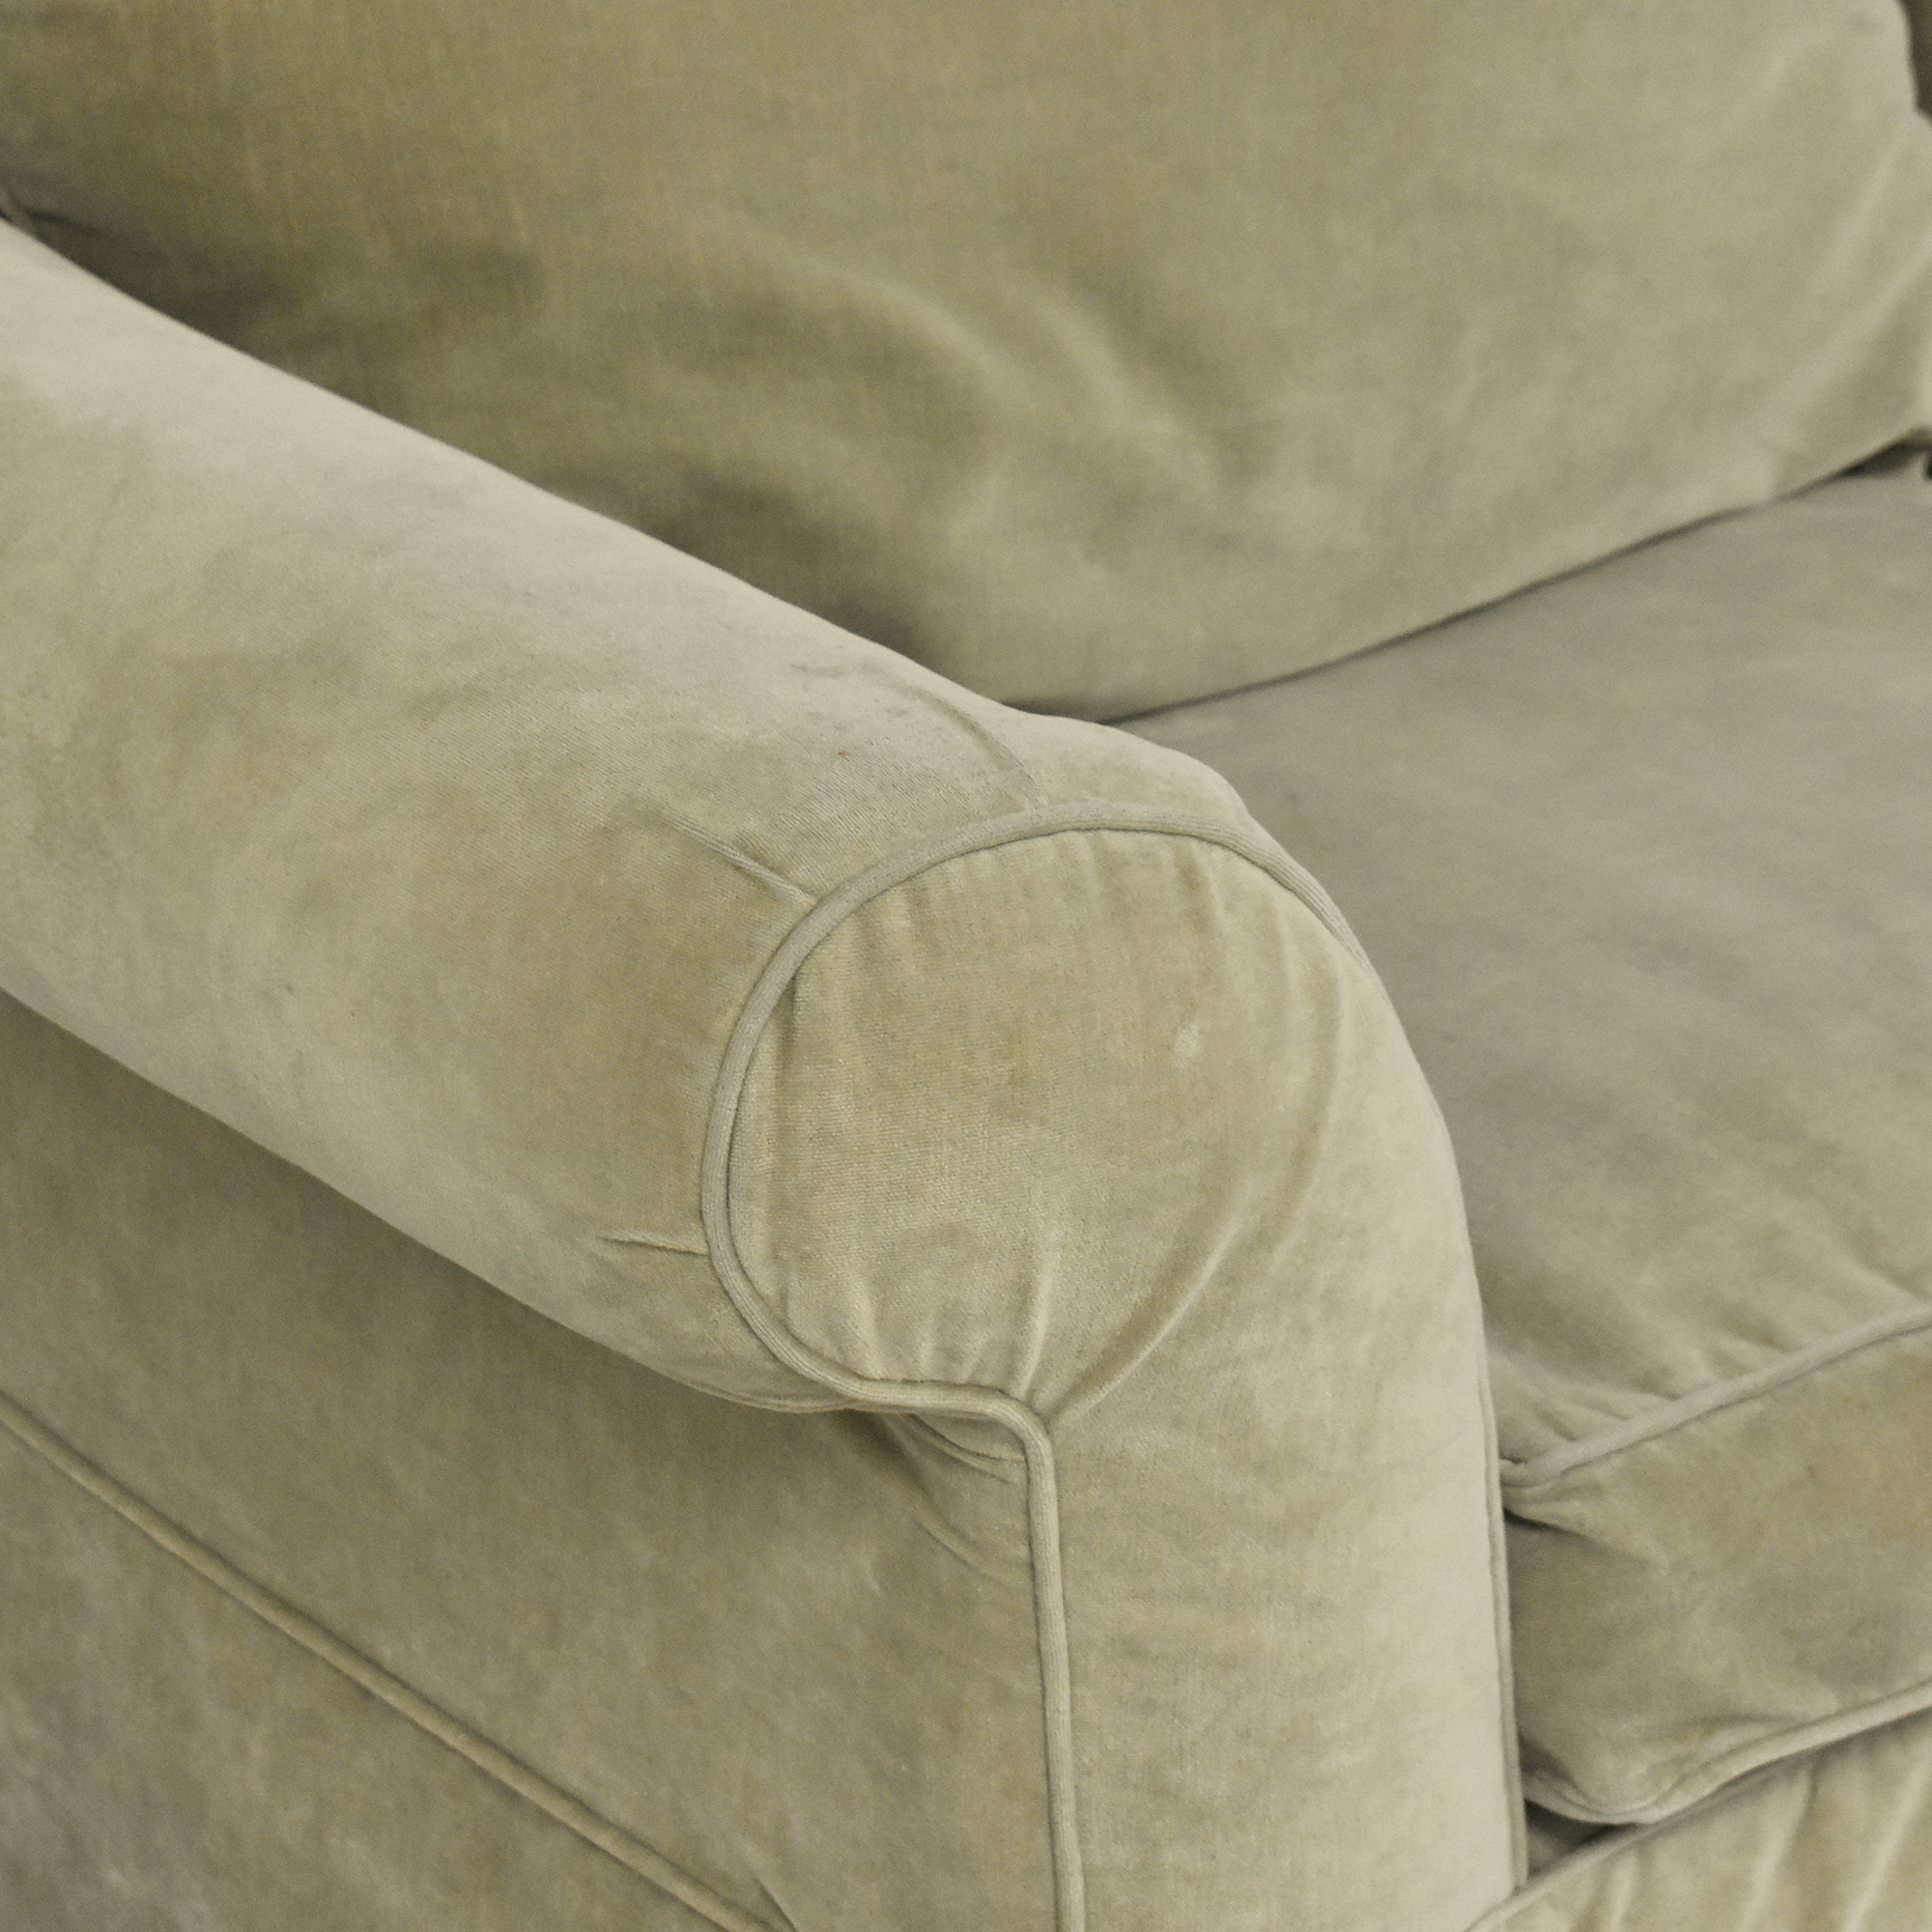 Southern Furniture of Conover Southern of Conover Roll Arm Sofa used